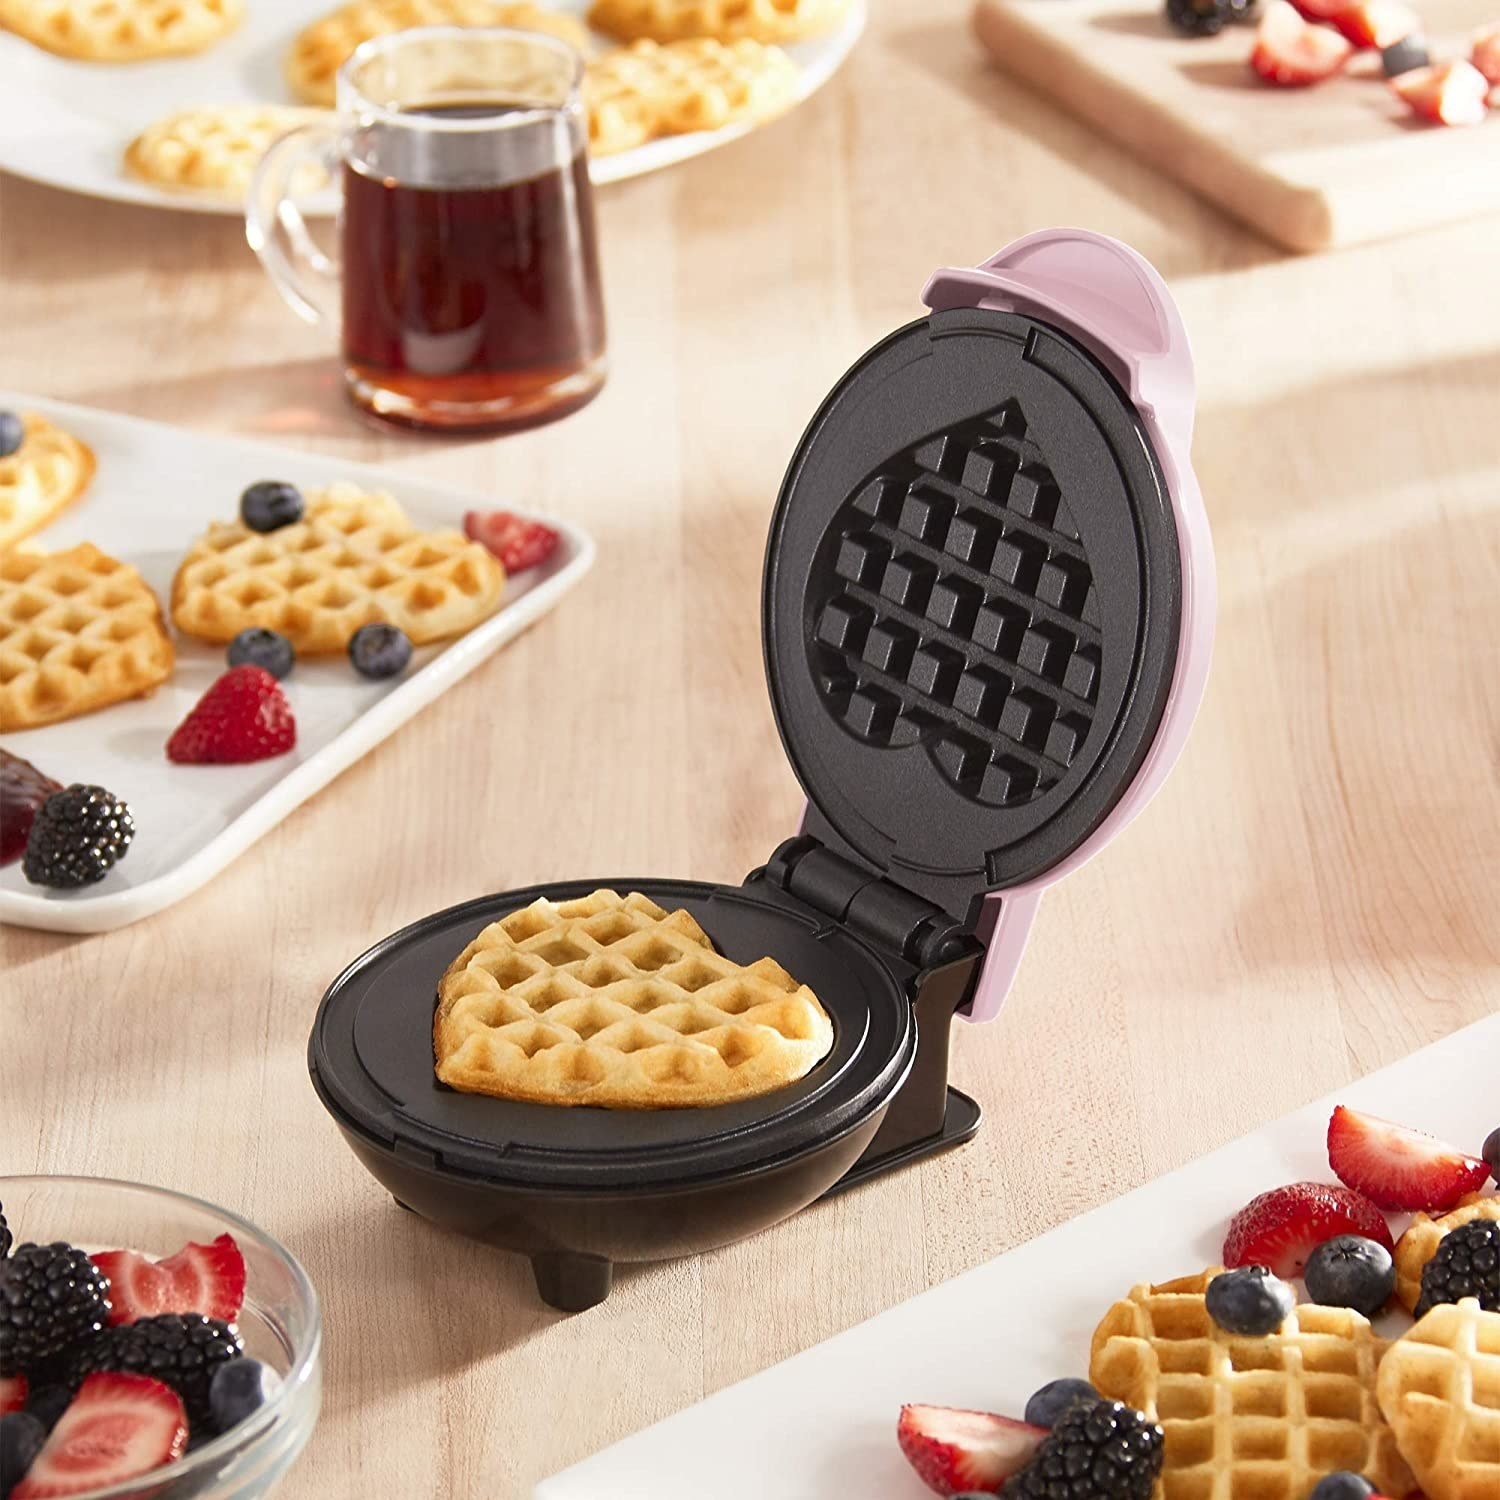 An open waffle maker showing the cooked heart-shaped waffle in it